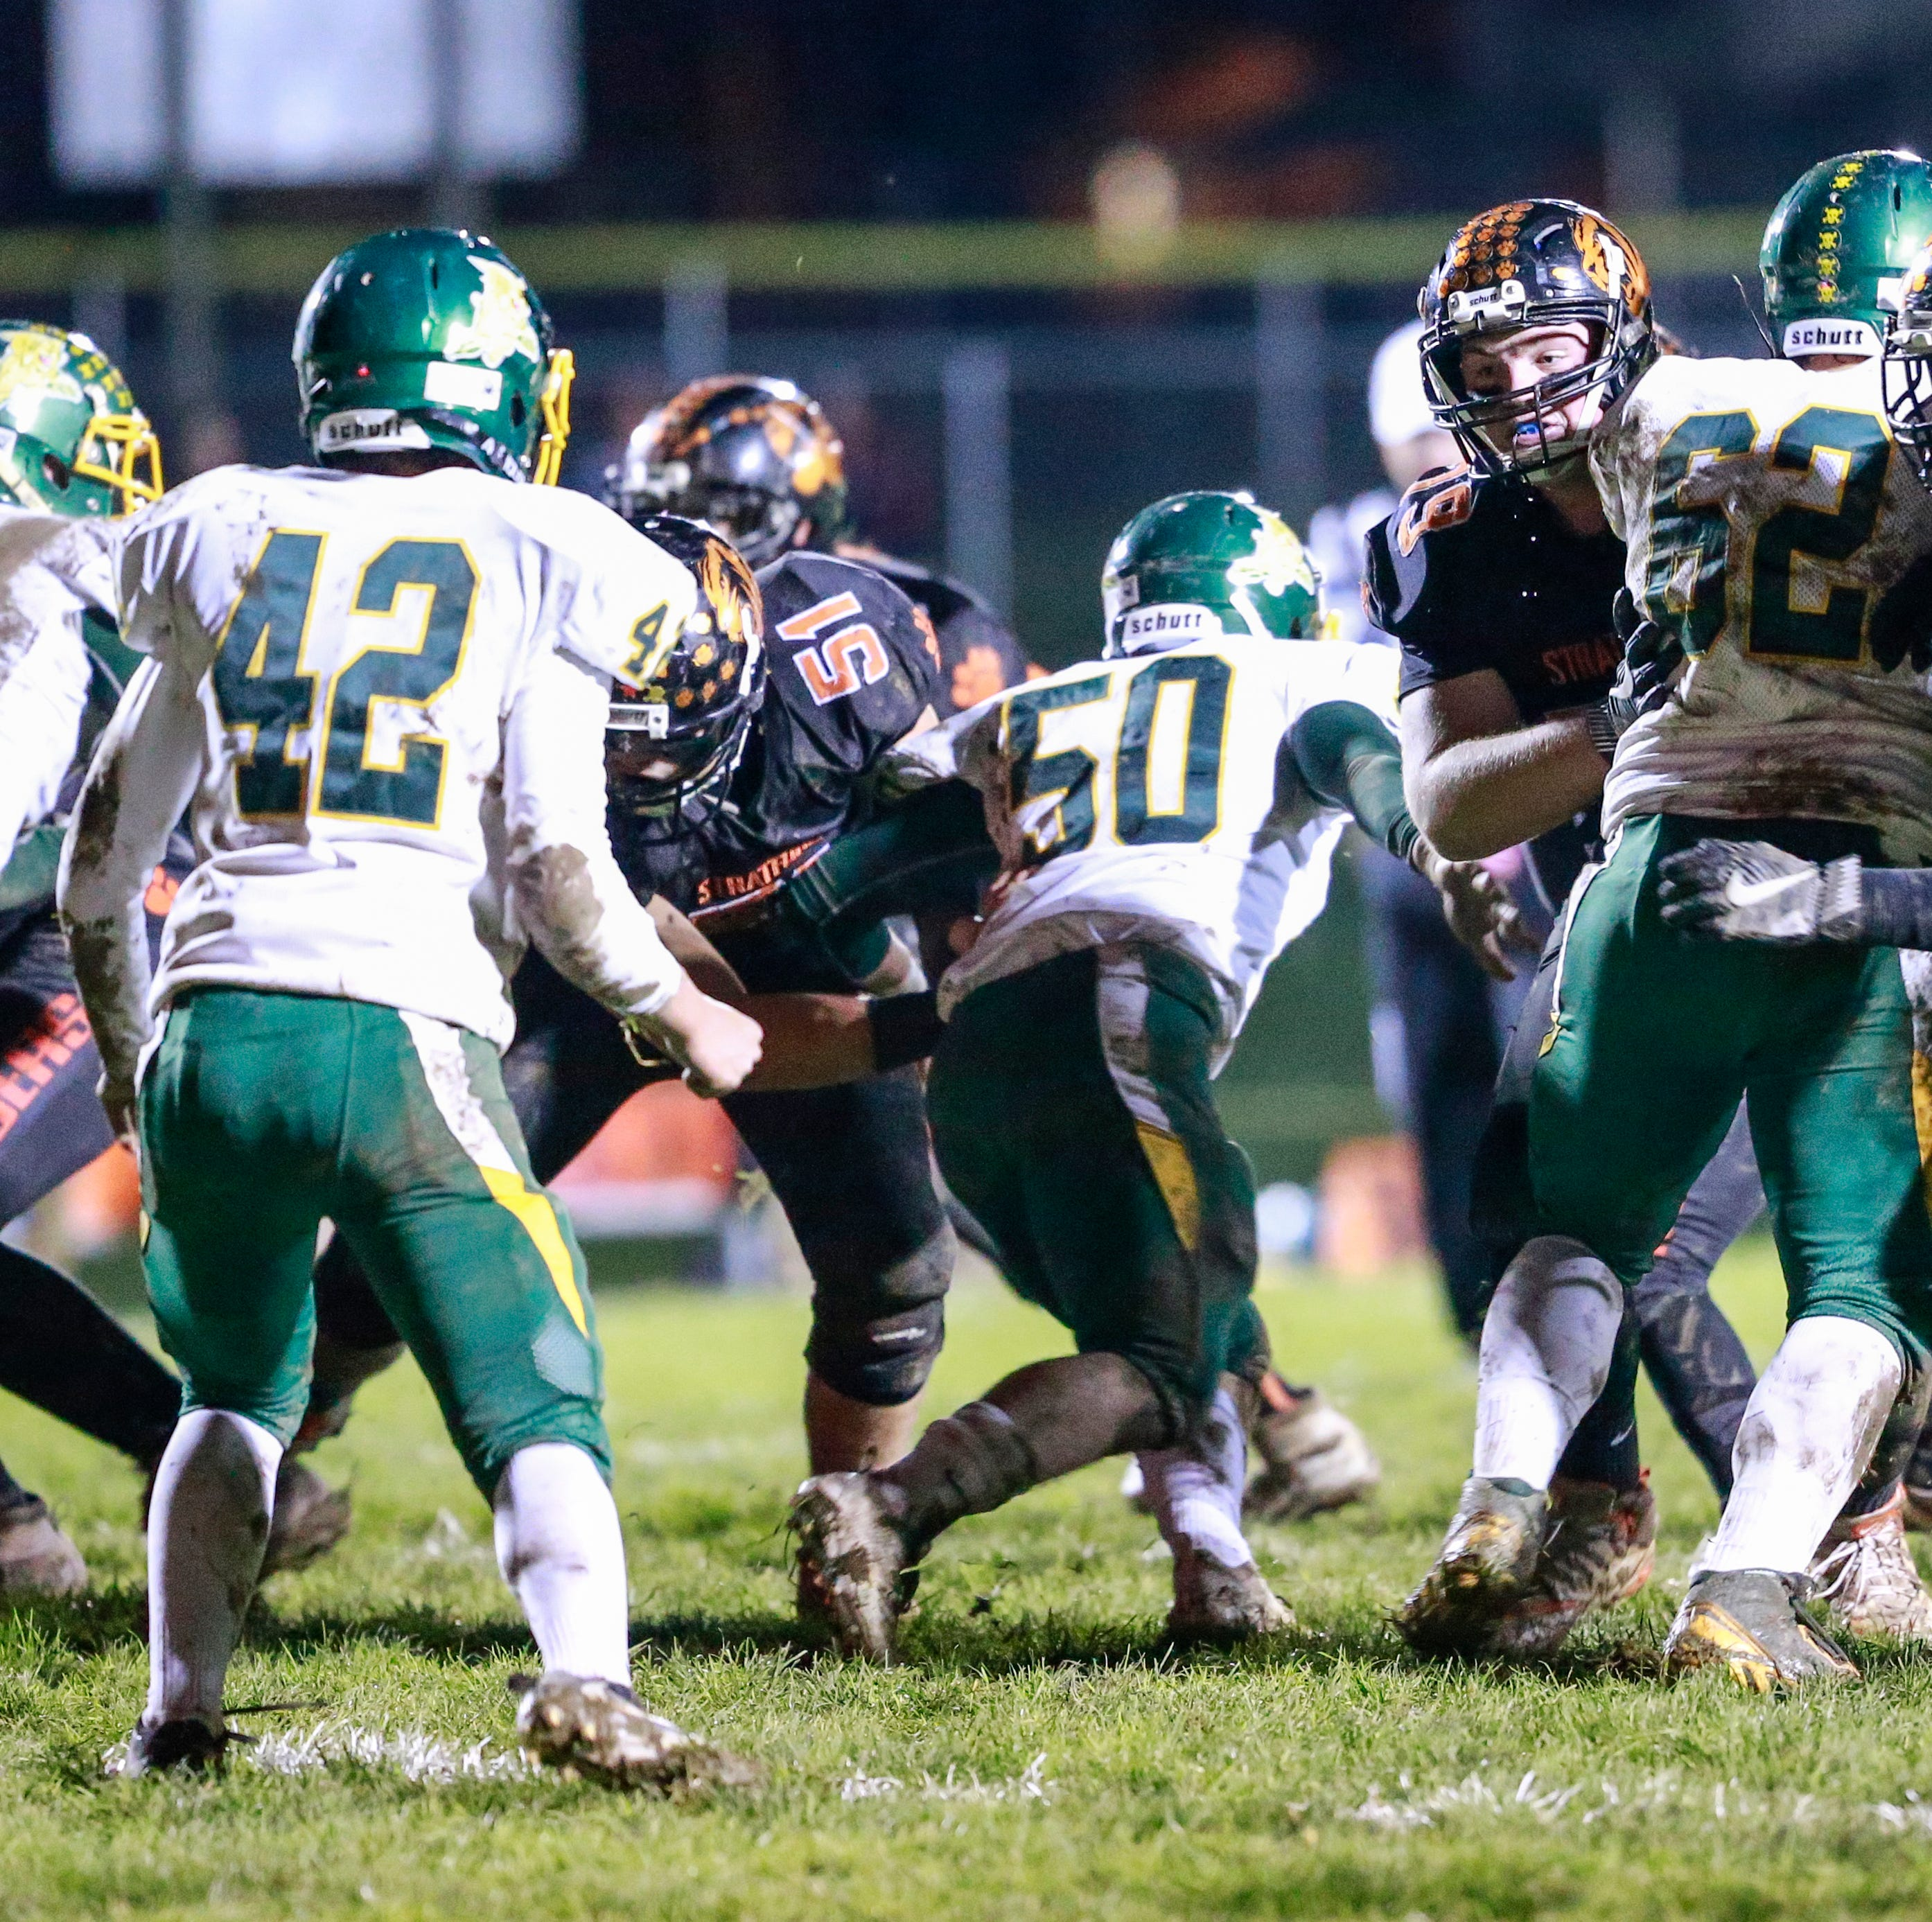 WIAA state football: Edgar, Stratford return together a decade after epic title game clash